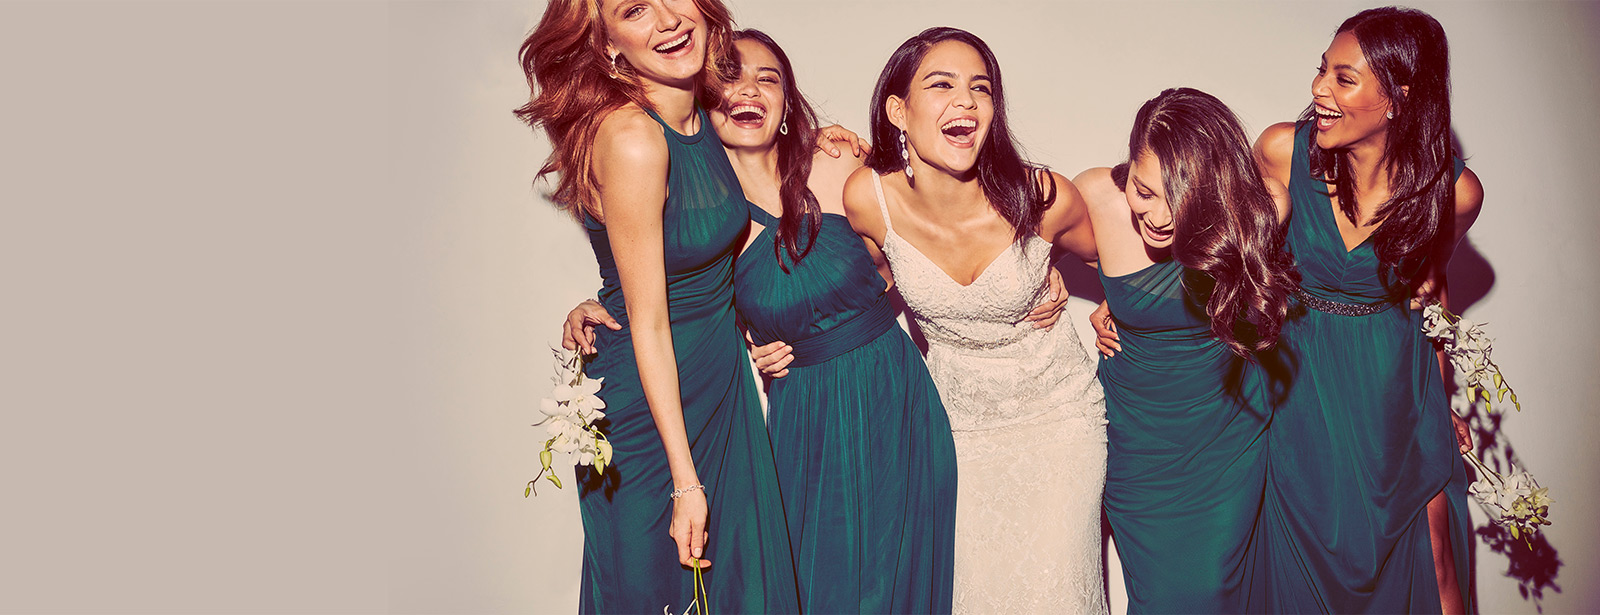 Bride and Bridesmaids with their arms around each other laughing